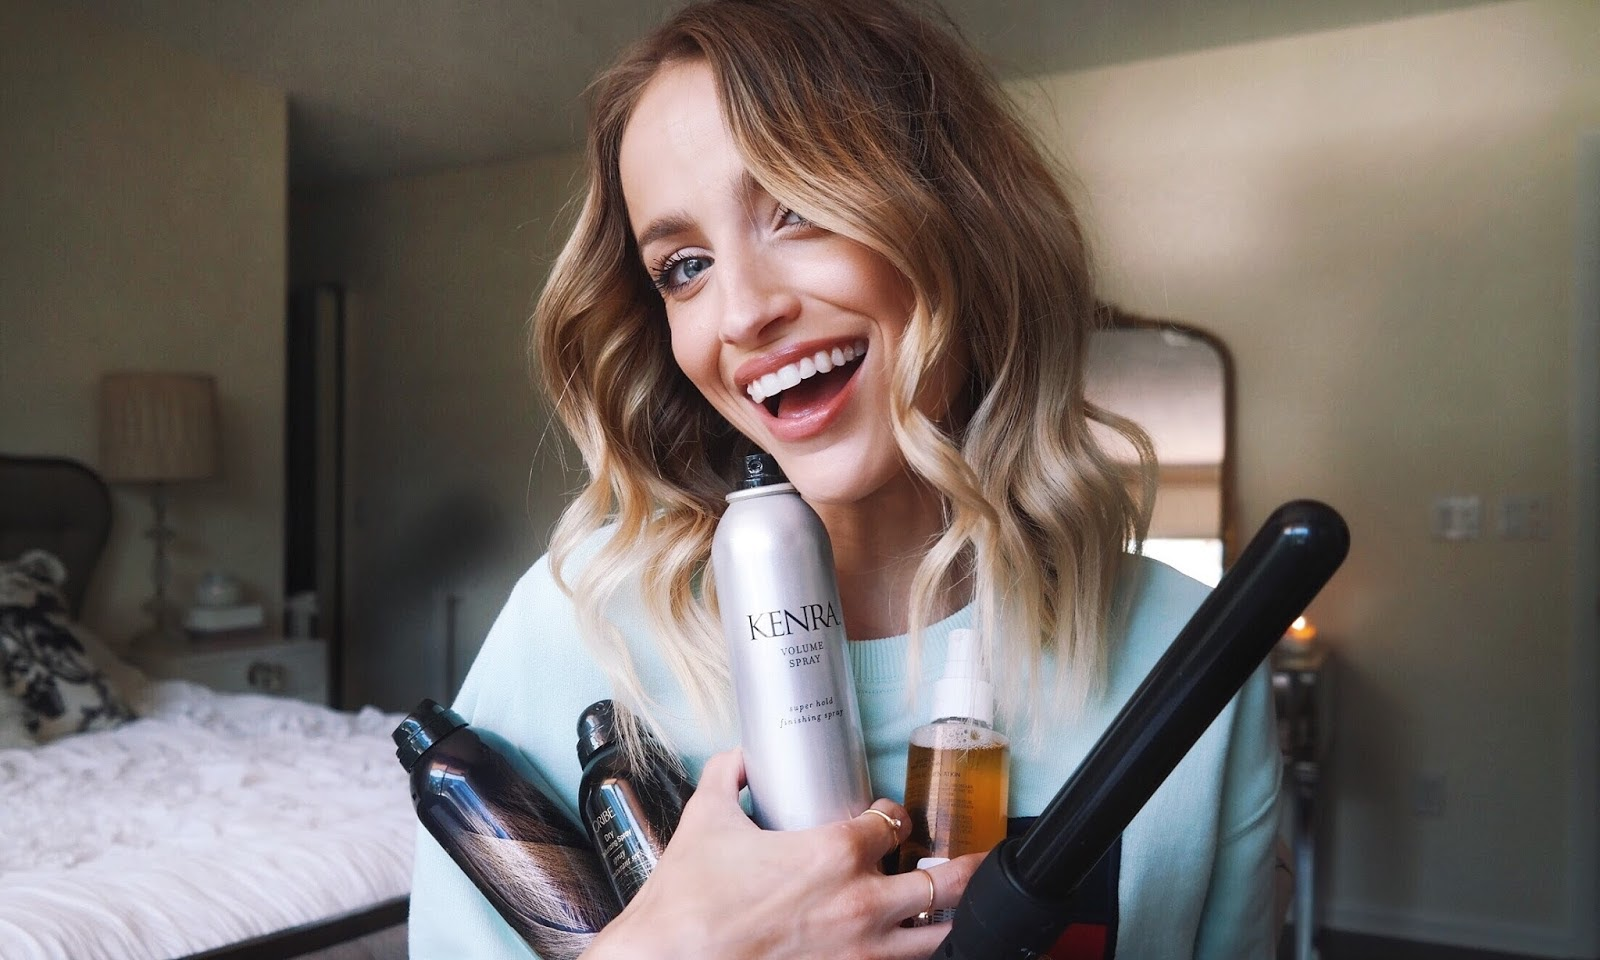 Styling Products For Voluminous Waves: Curl and Chill